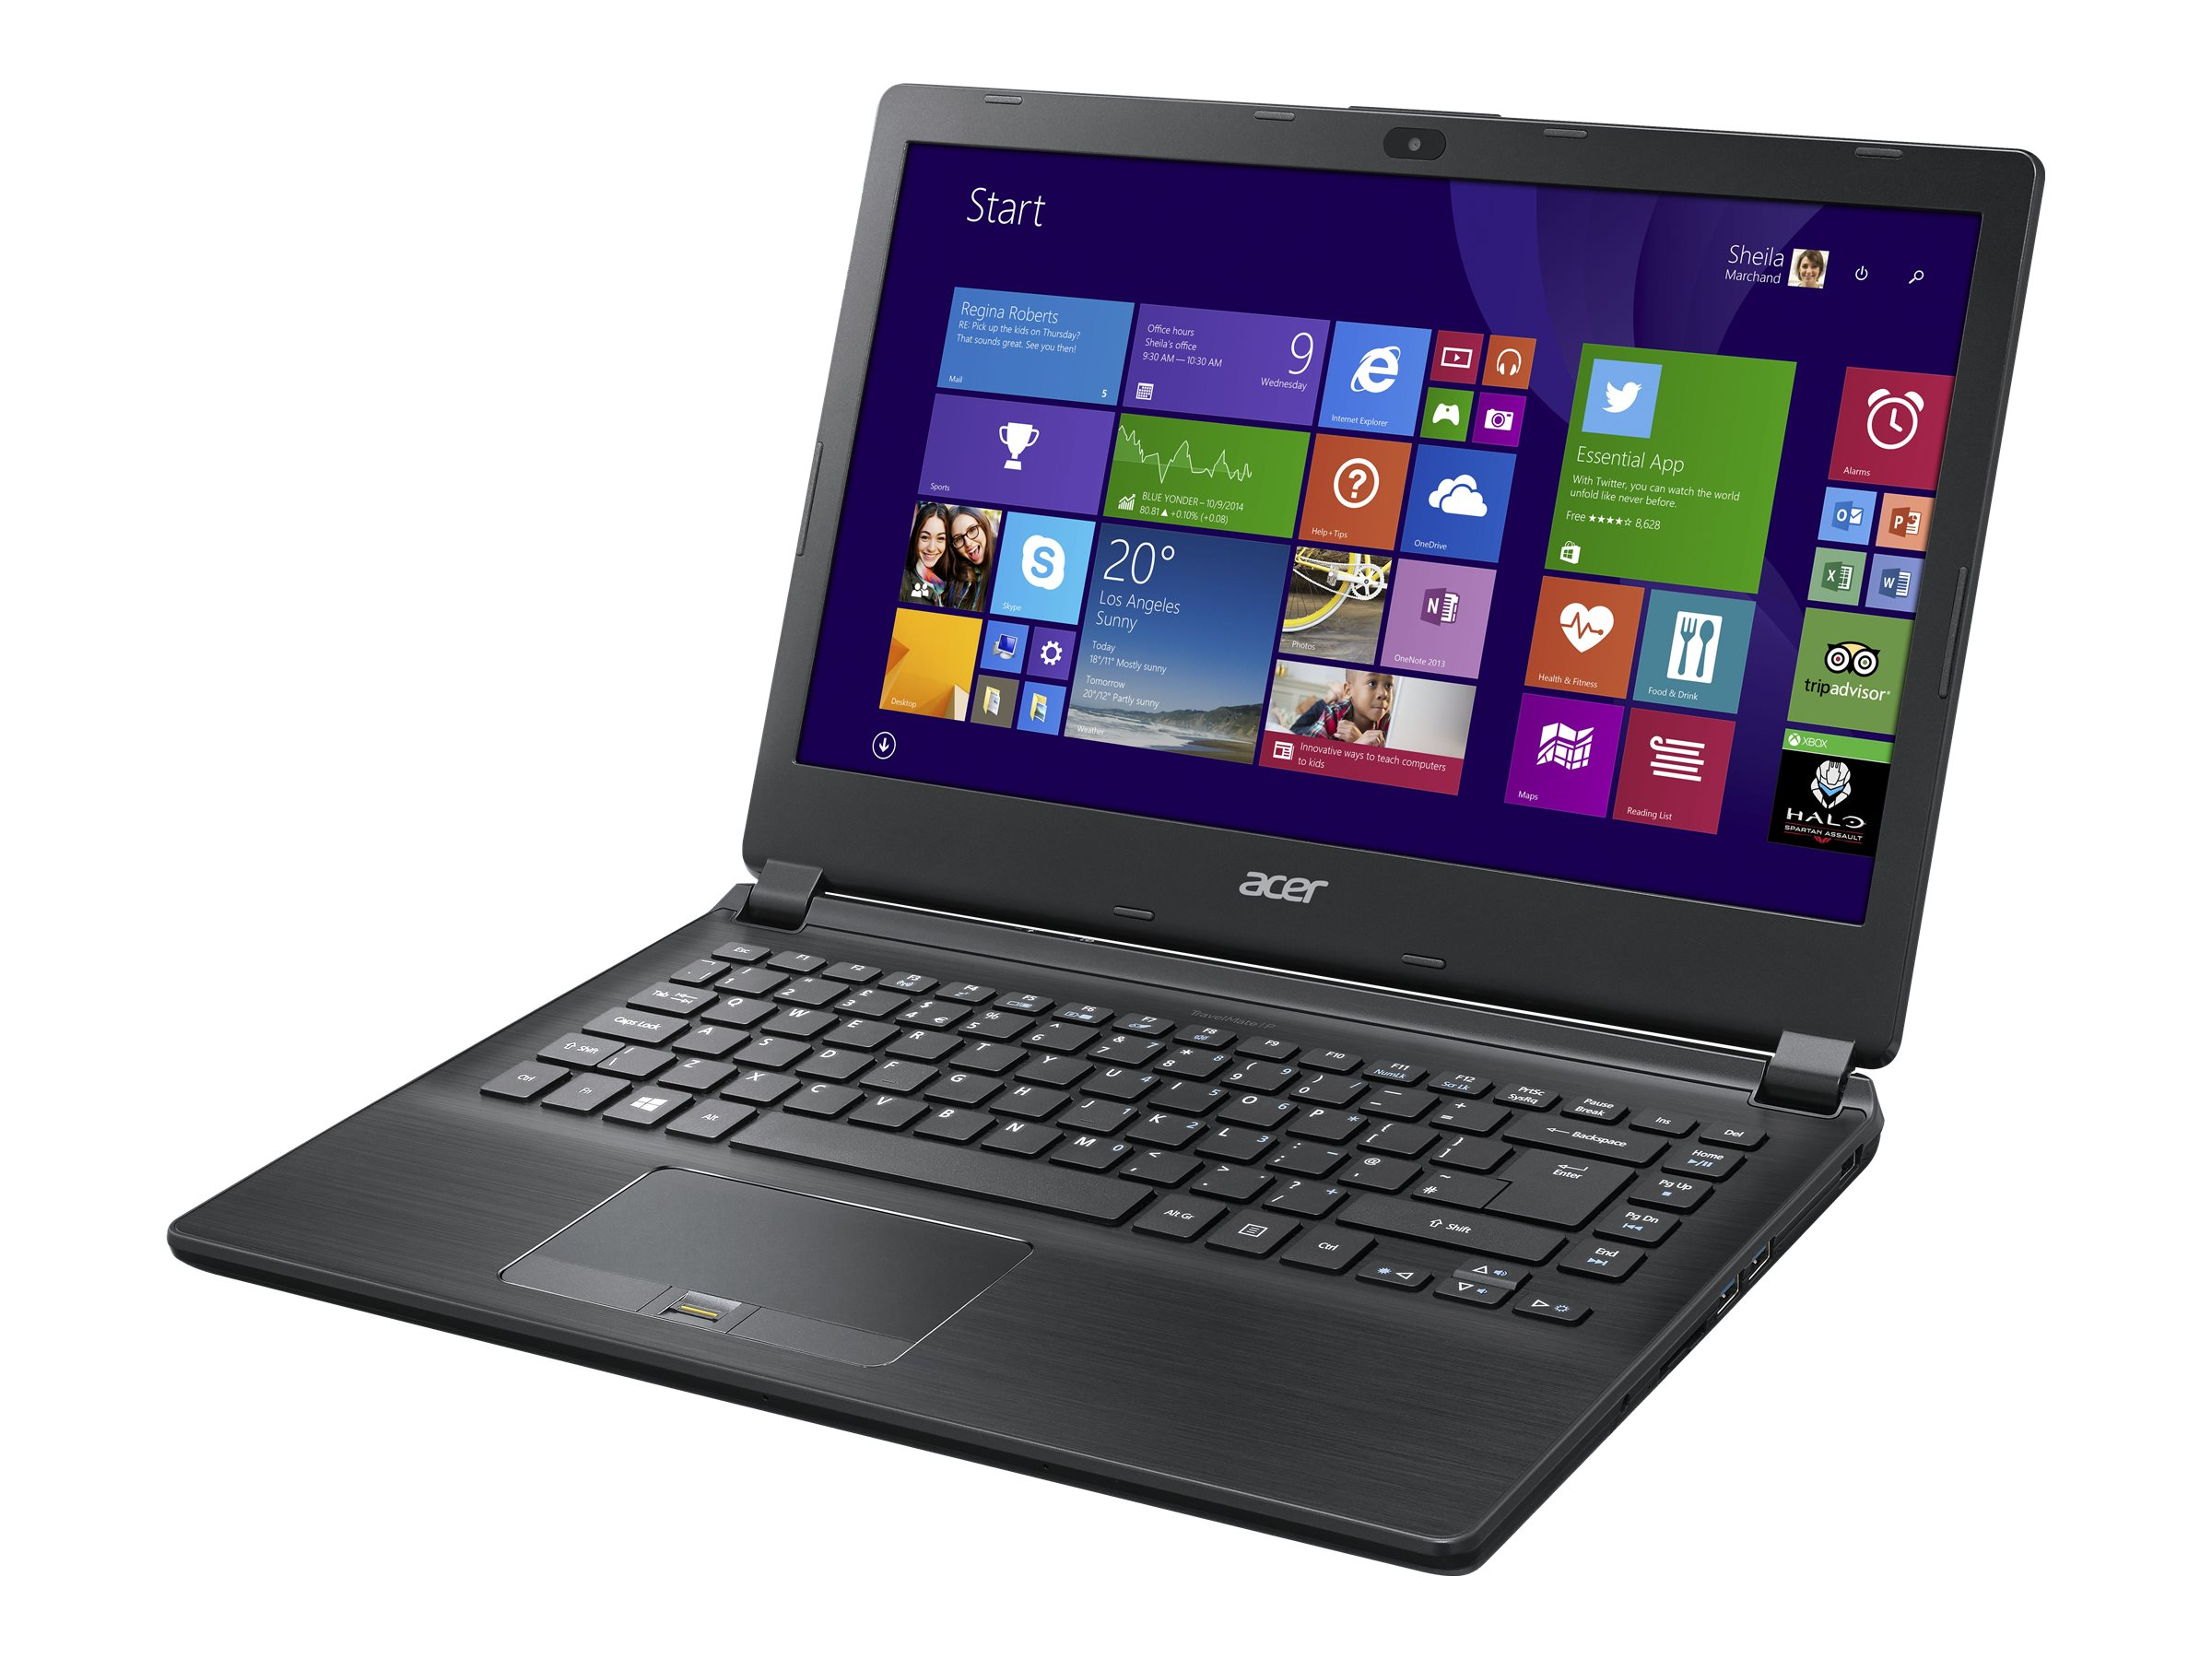 Acer TravelMate P446-M-77QP 2.4GHz Core i7 14in display